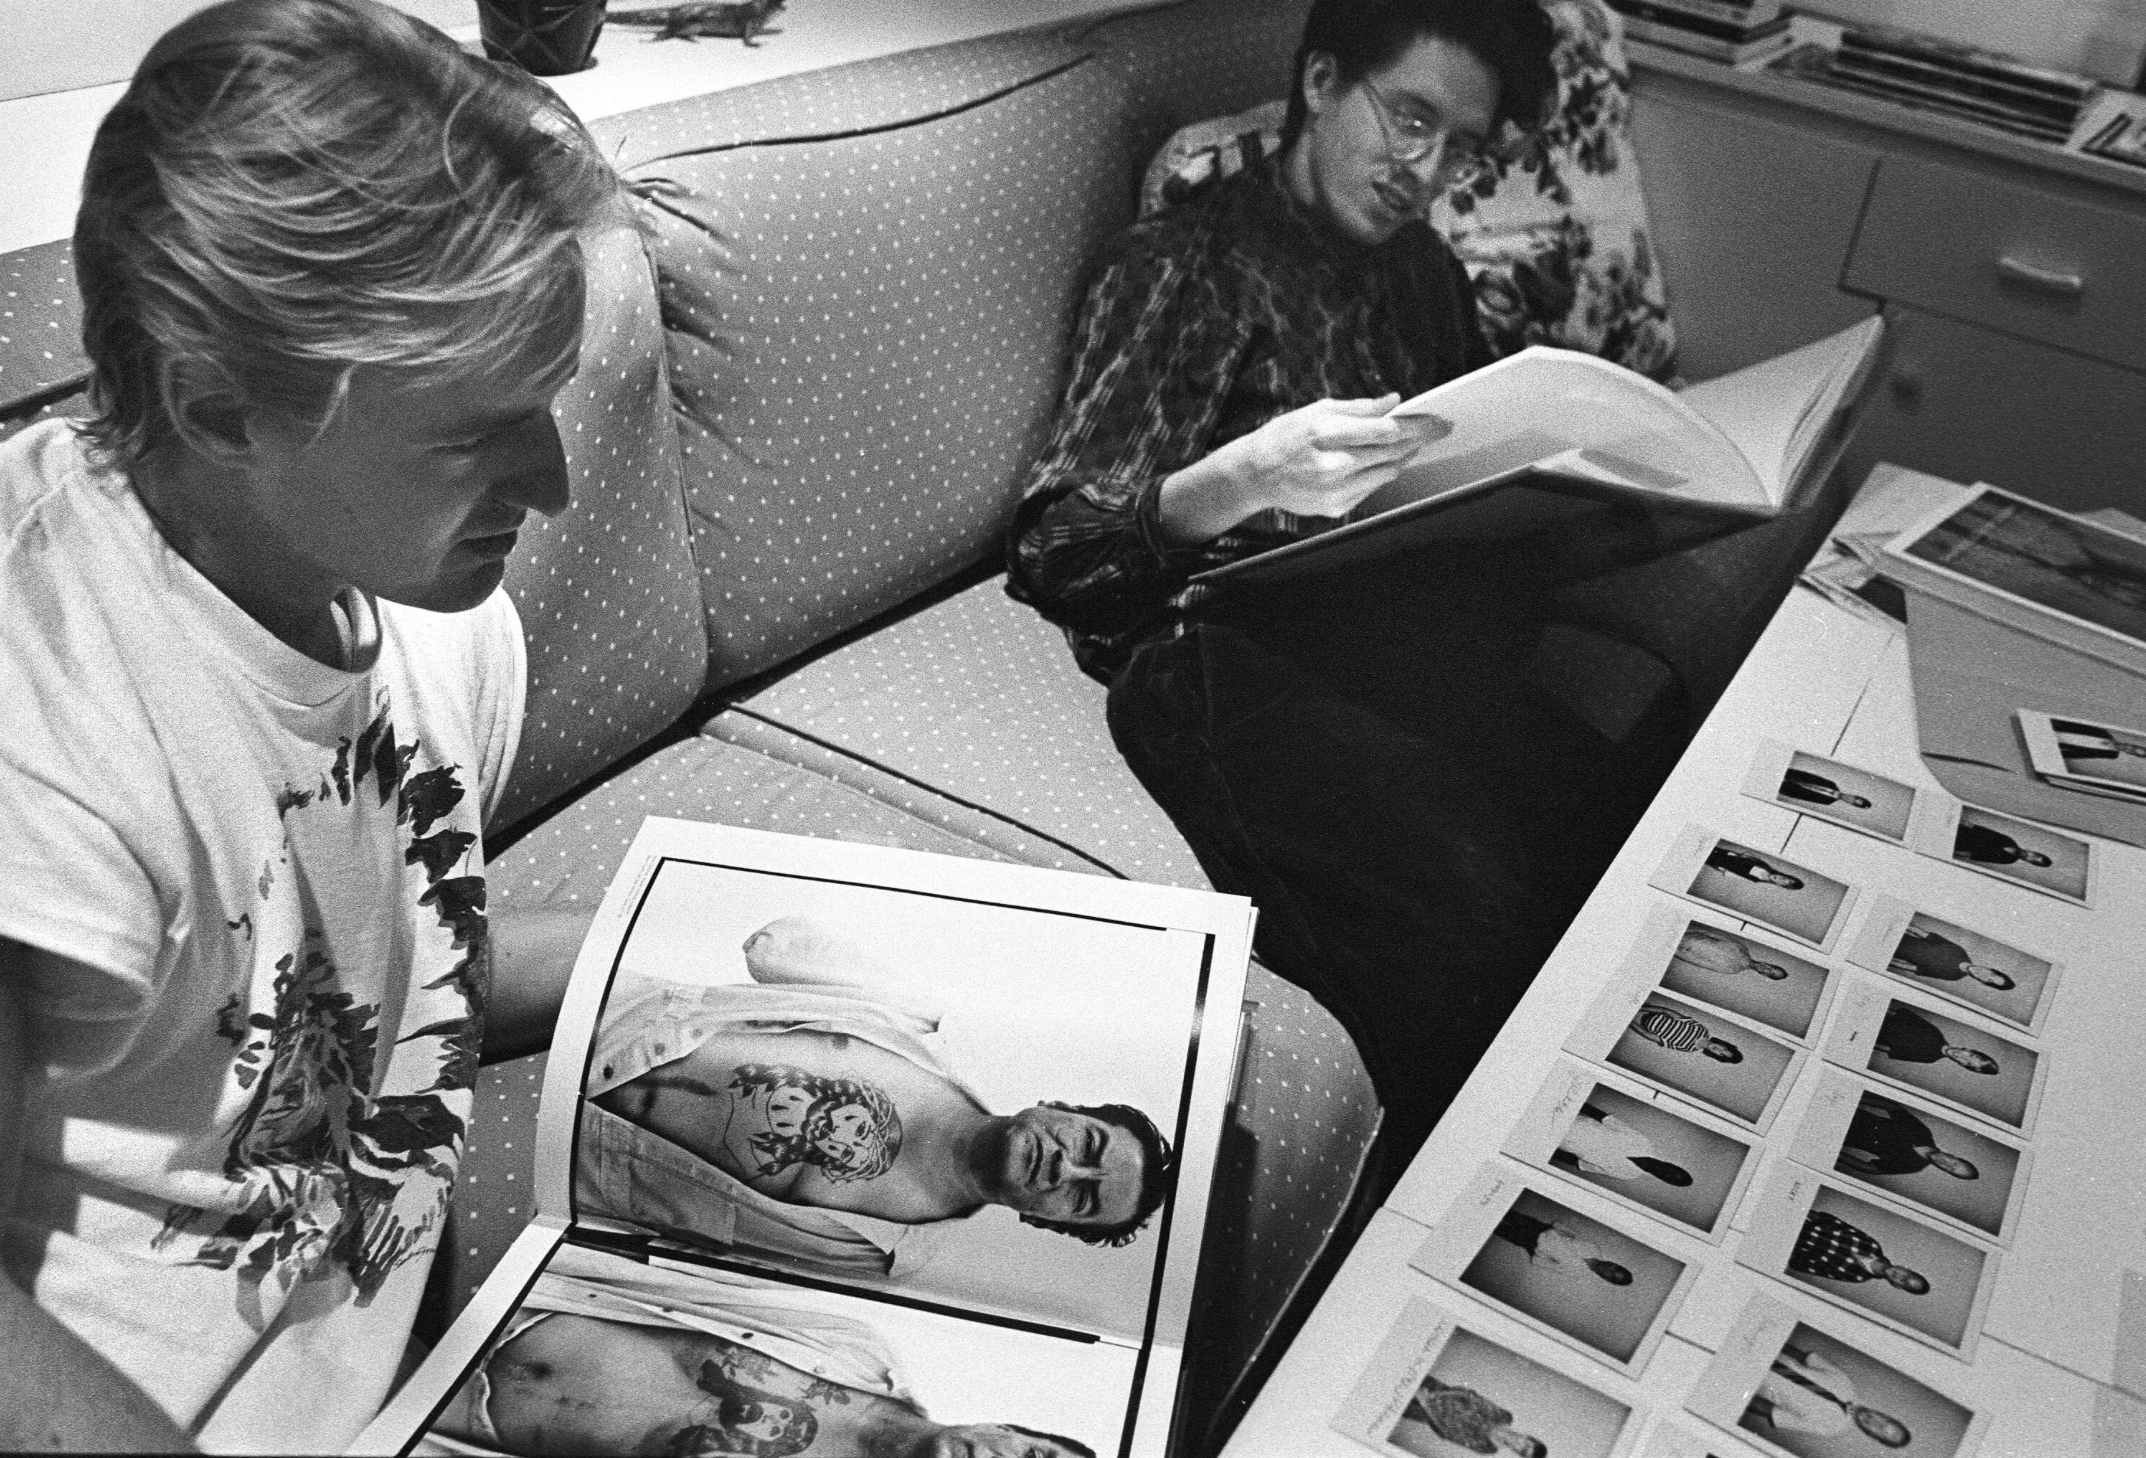 Wes Anderson and Owen Wilson, Dallas, Texas, 1994